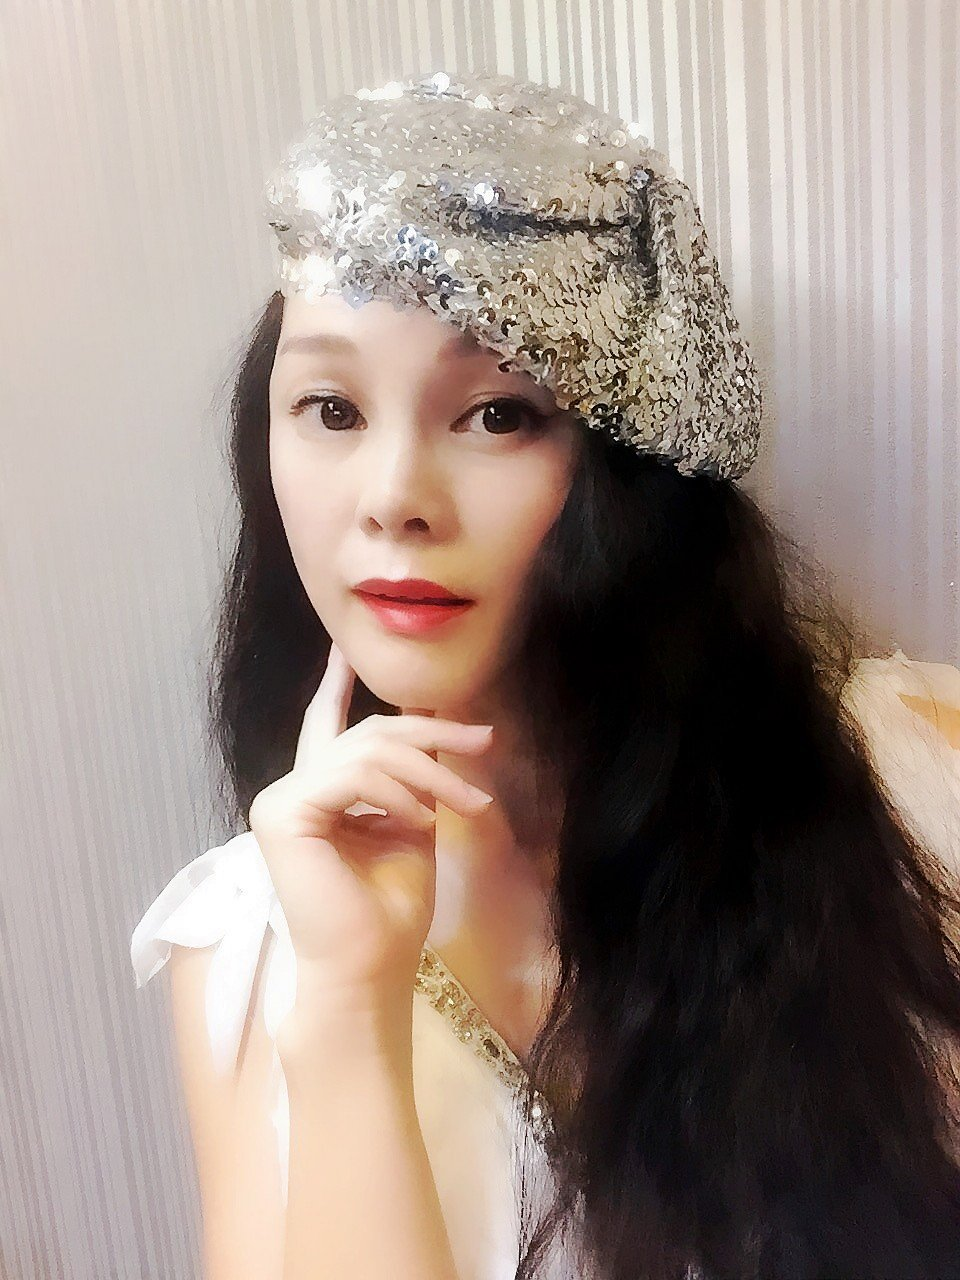 Silver Sequin Beret,Womens Turban,Full Turban,Turban Headband,Turban Hat,Stretch Turban, Caps, Hats, Women Hats,Fashion Turban,Head Wrap,Head Scarf,Headband,Hipster,Fashion,Gift ,Show, Party ,Holiday